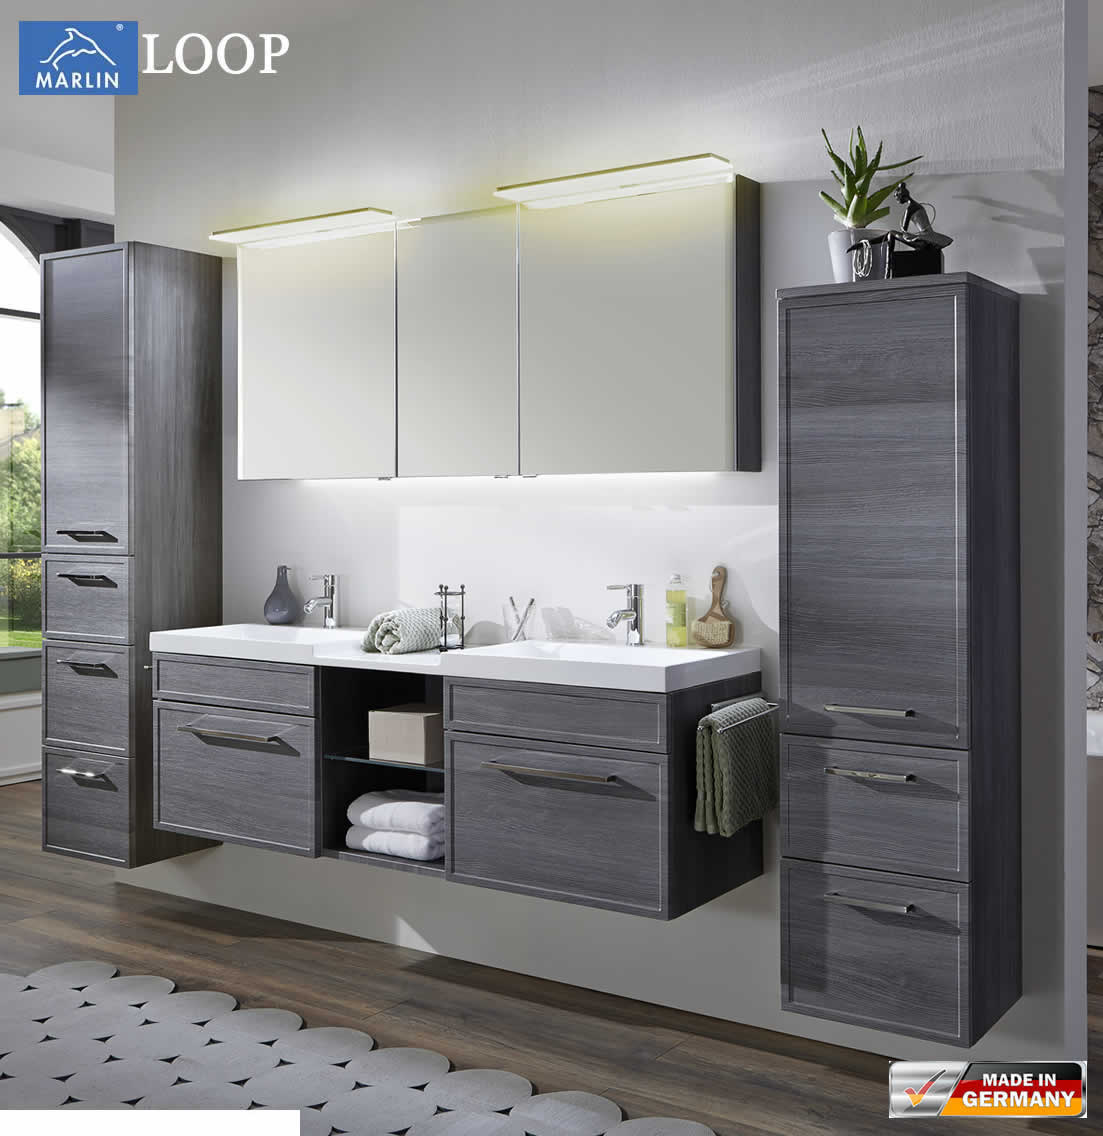 marlin loop badm bel set 160 cm mit led spiegelschrank. Black Bedroom Furniture Sets. Home Design Ideas